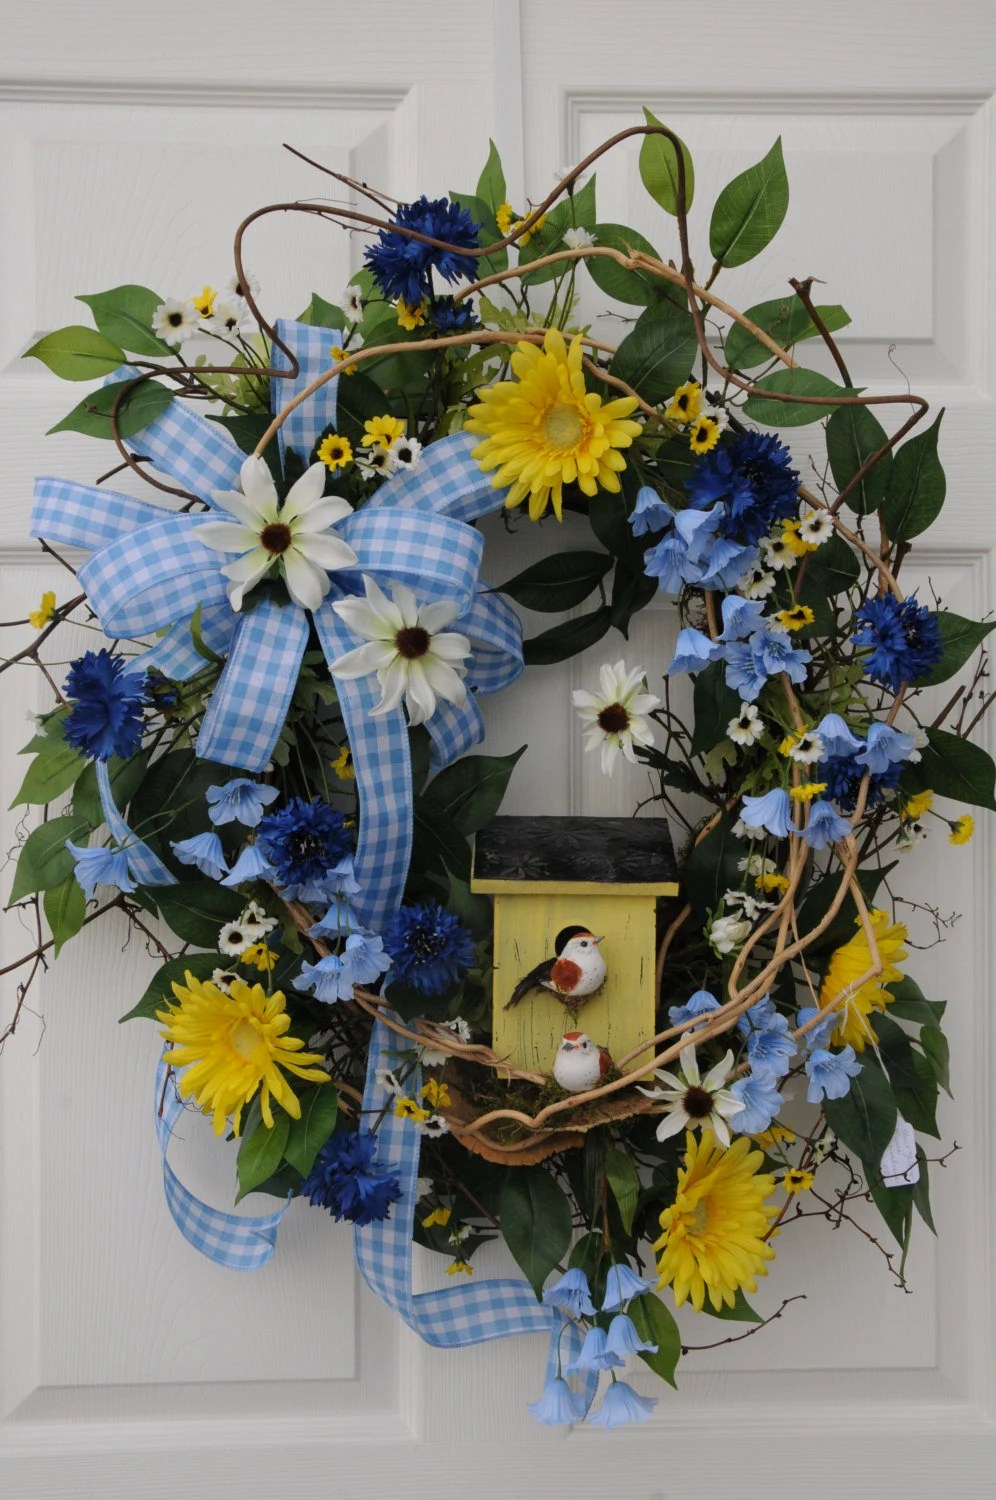 SpringSummer Wreath With Birdhouse Spring Wreath Summer